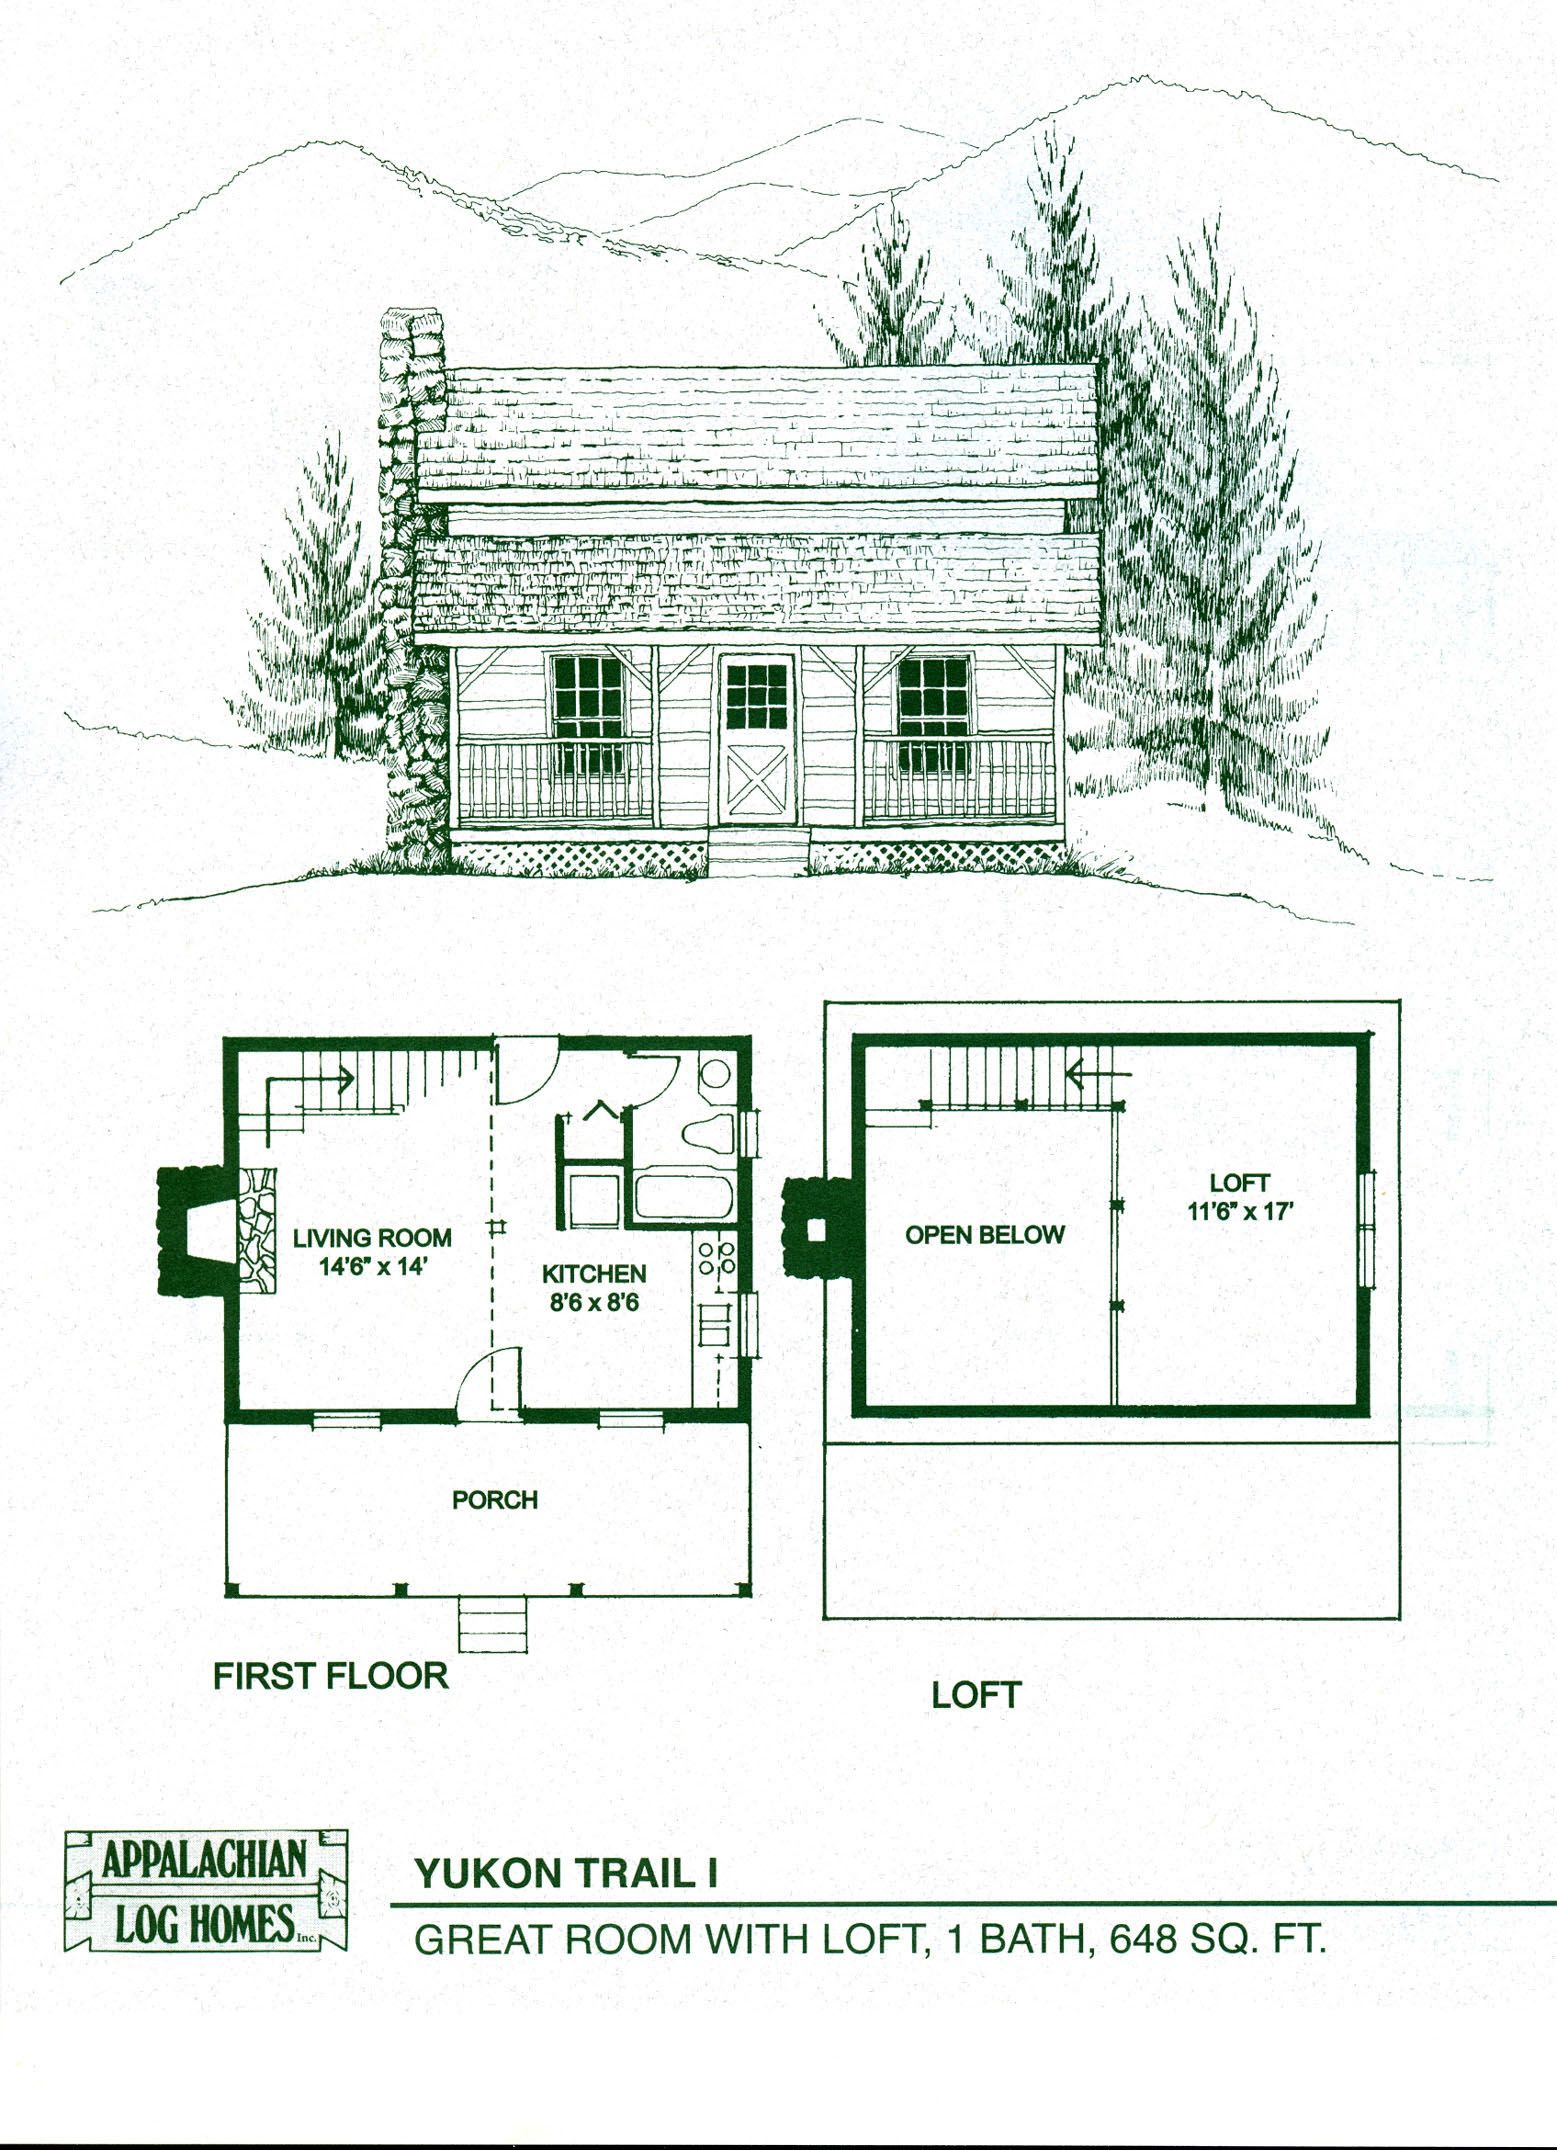 log home floor plans log cabin kits appalachian log On log cabin house floor plans